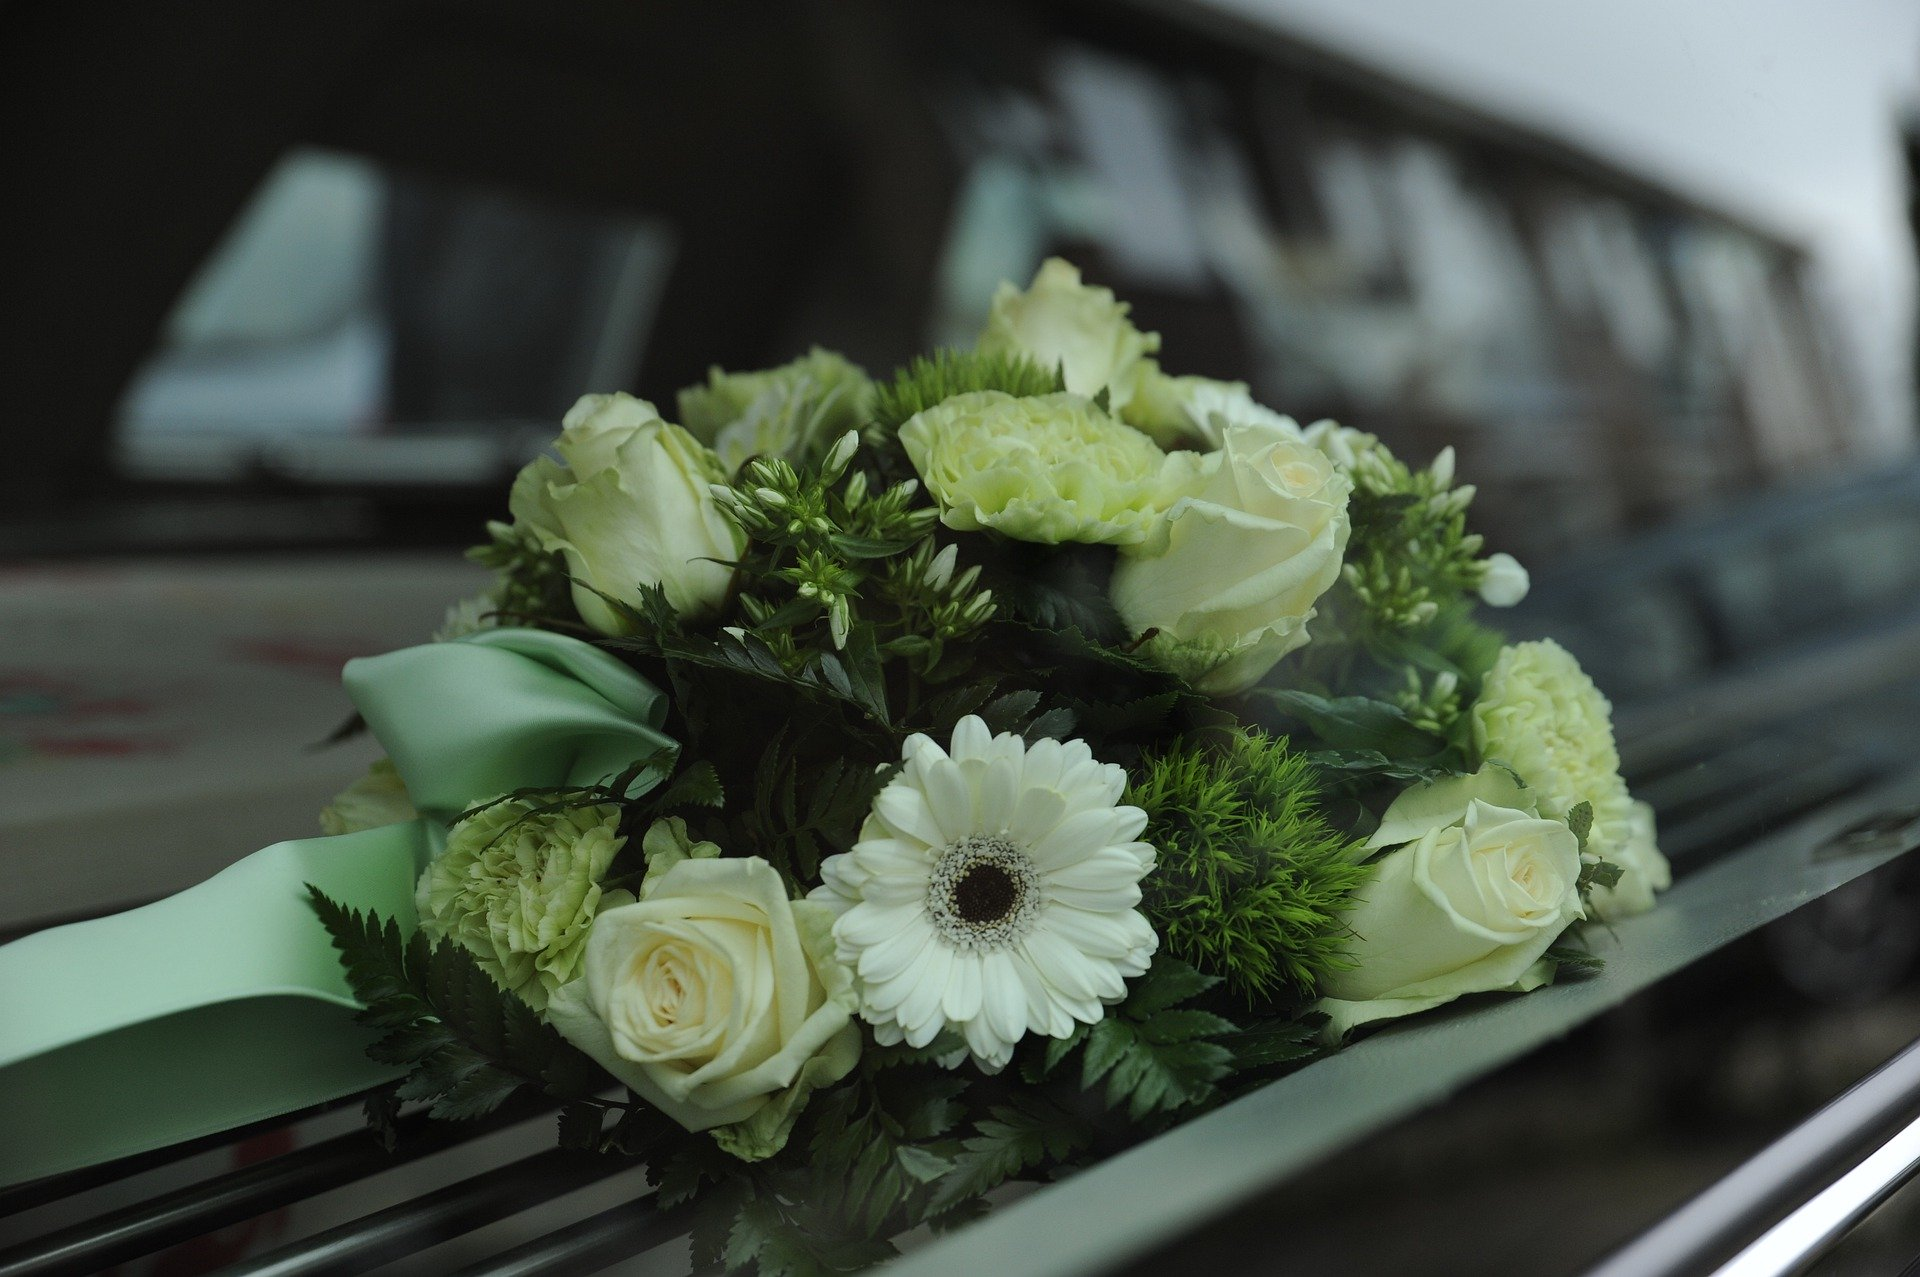 Funerals could see the number of mourners limited due to coronavirus